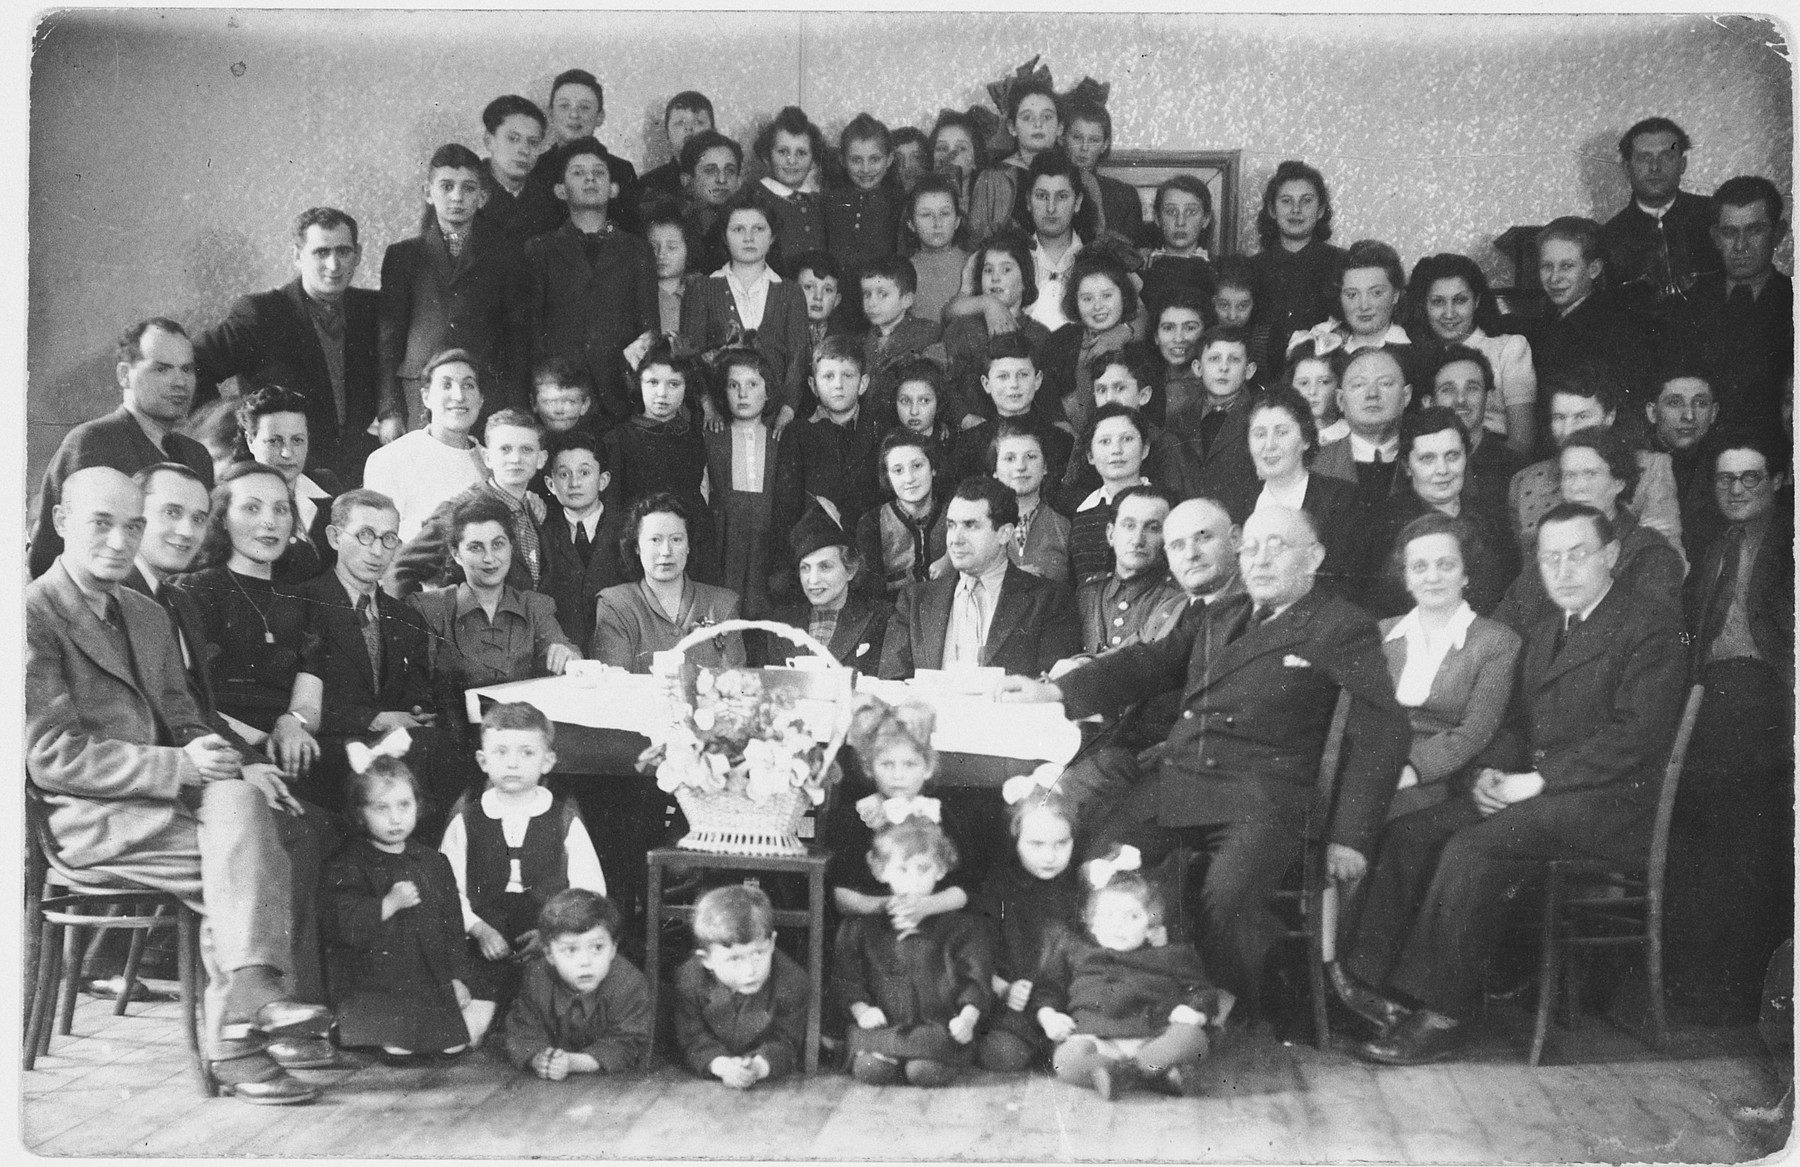 Yiddish actress Ida Kaminska visits the children and staff of a children's home in Chorzow, Poland.